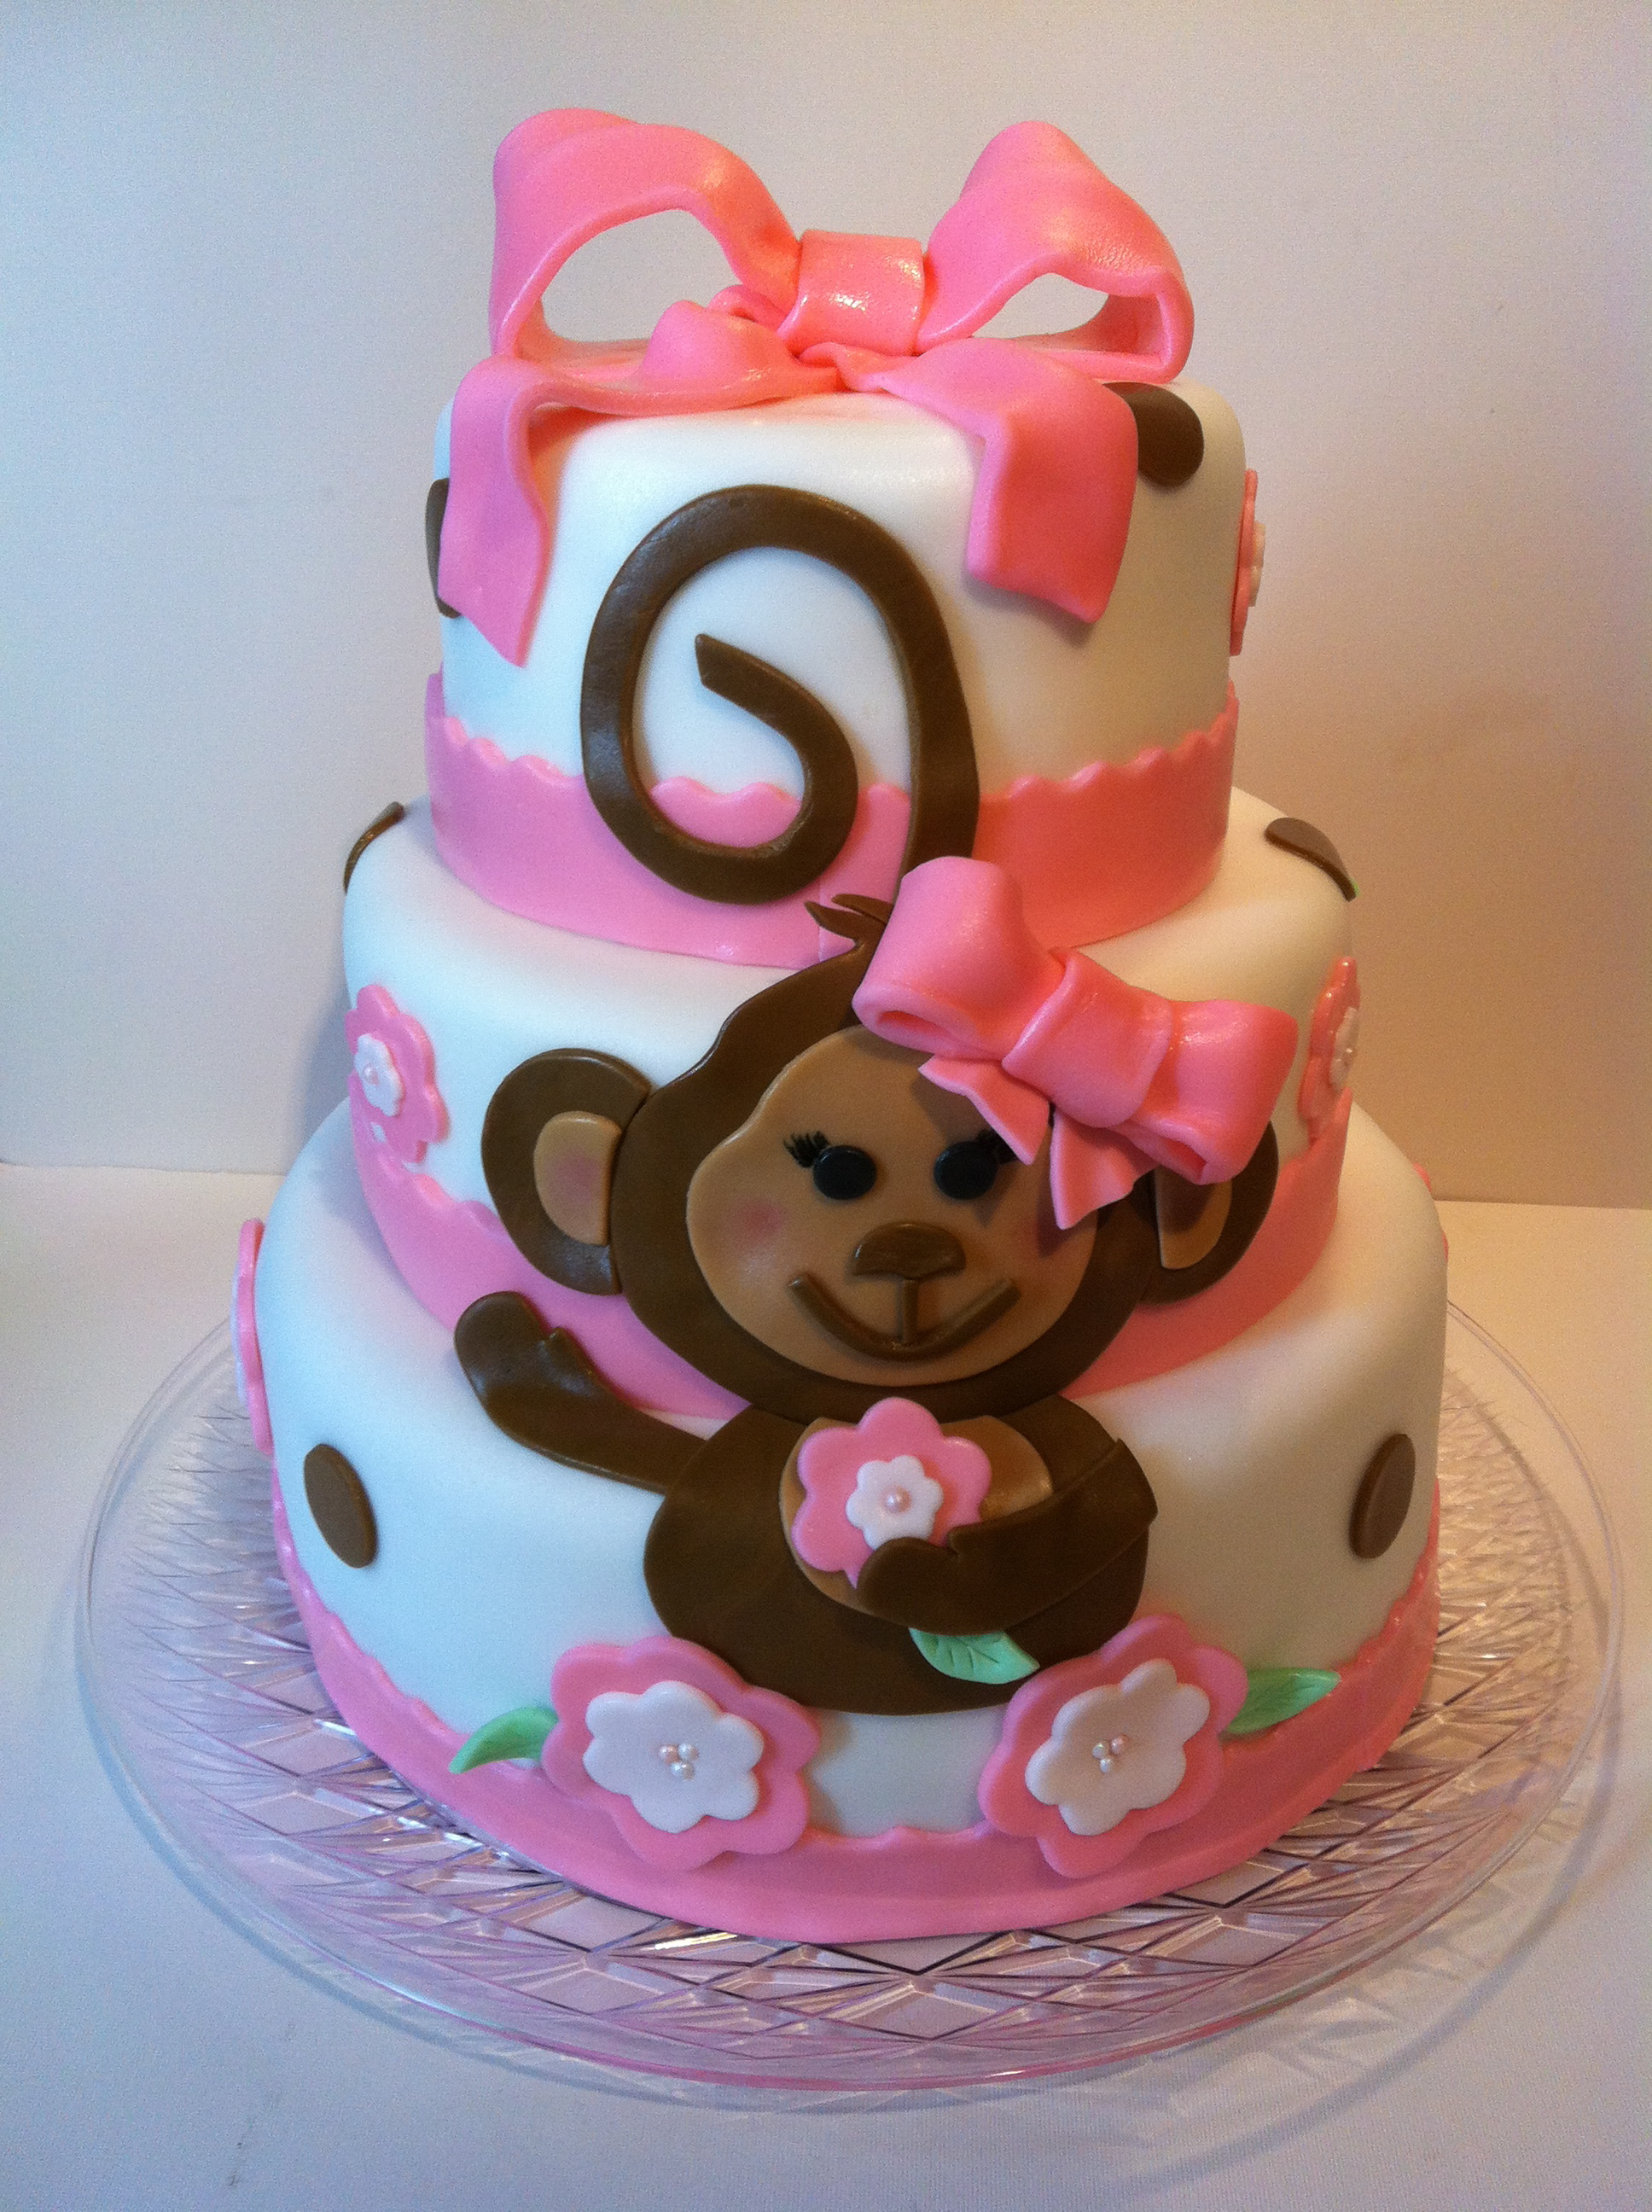 Baby Shower Cakes In Chicago ~ Baby shower cakes by cathy chicago